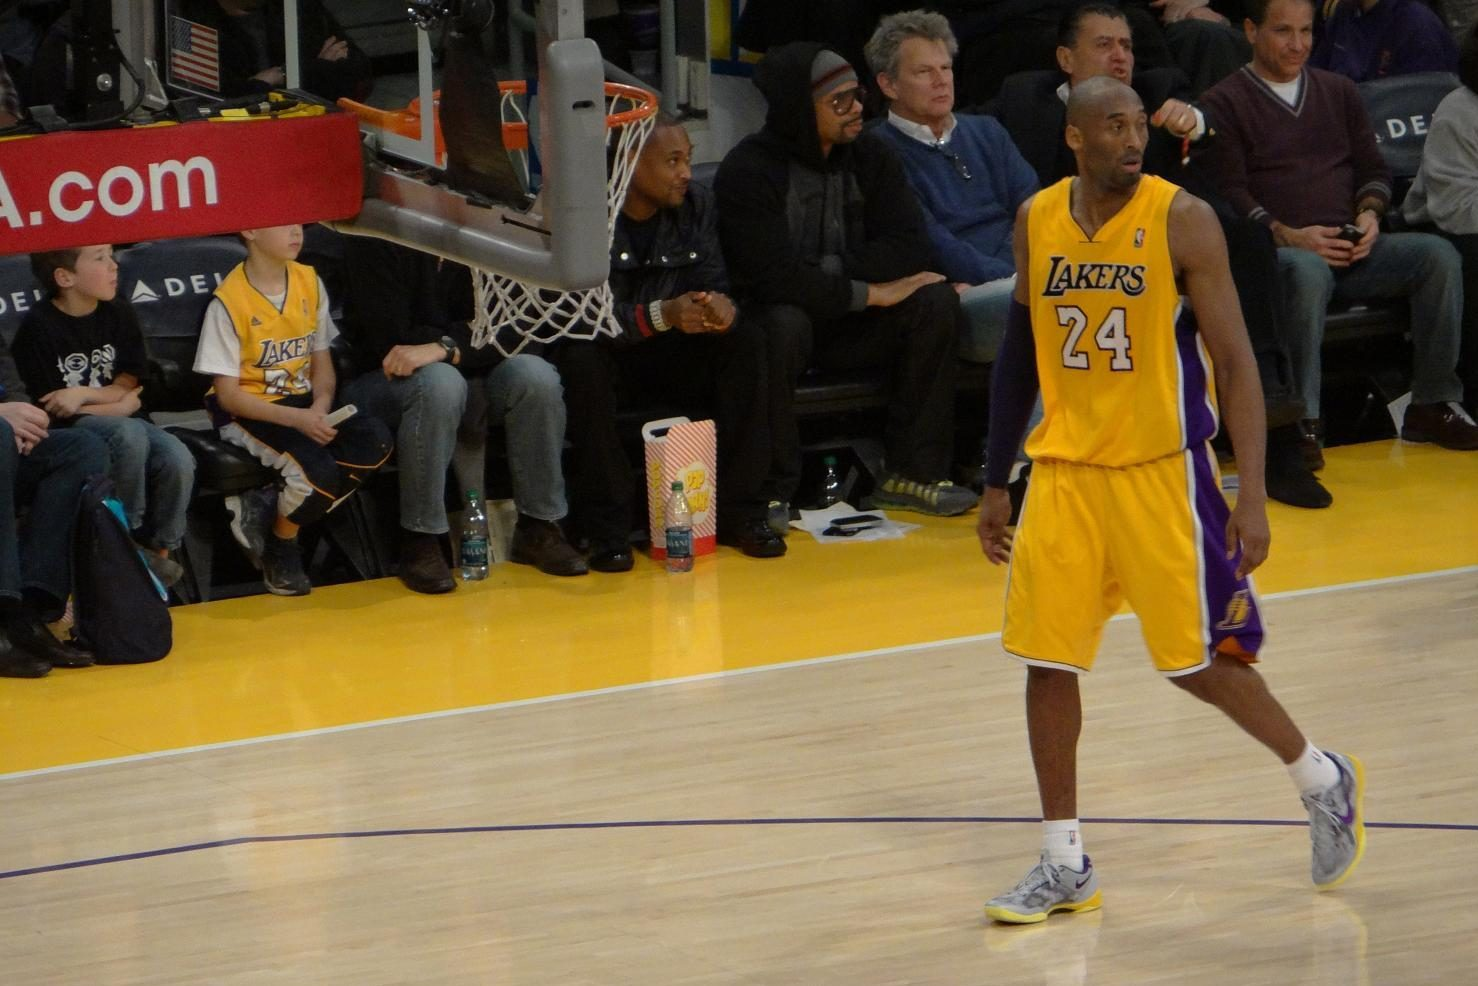 Kobe Bryant approaches the Lakers' bench in a 2013 home game against the Bucks. Bryant died Sunday in a helicopter crash at age 41.